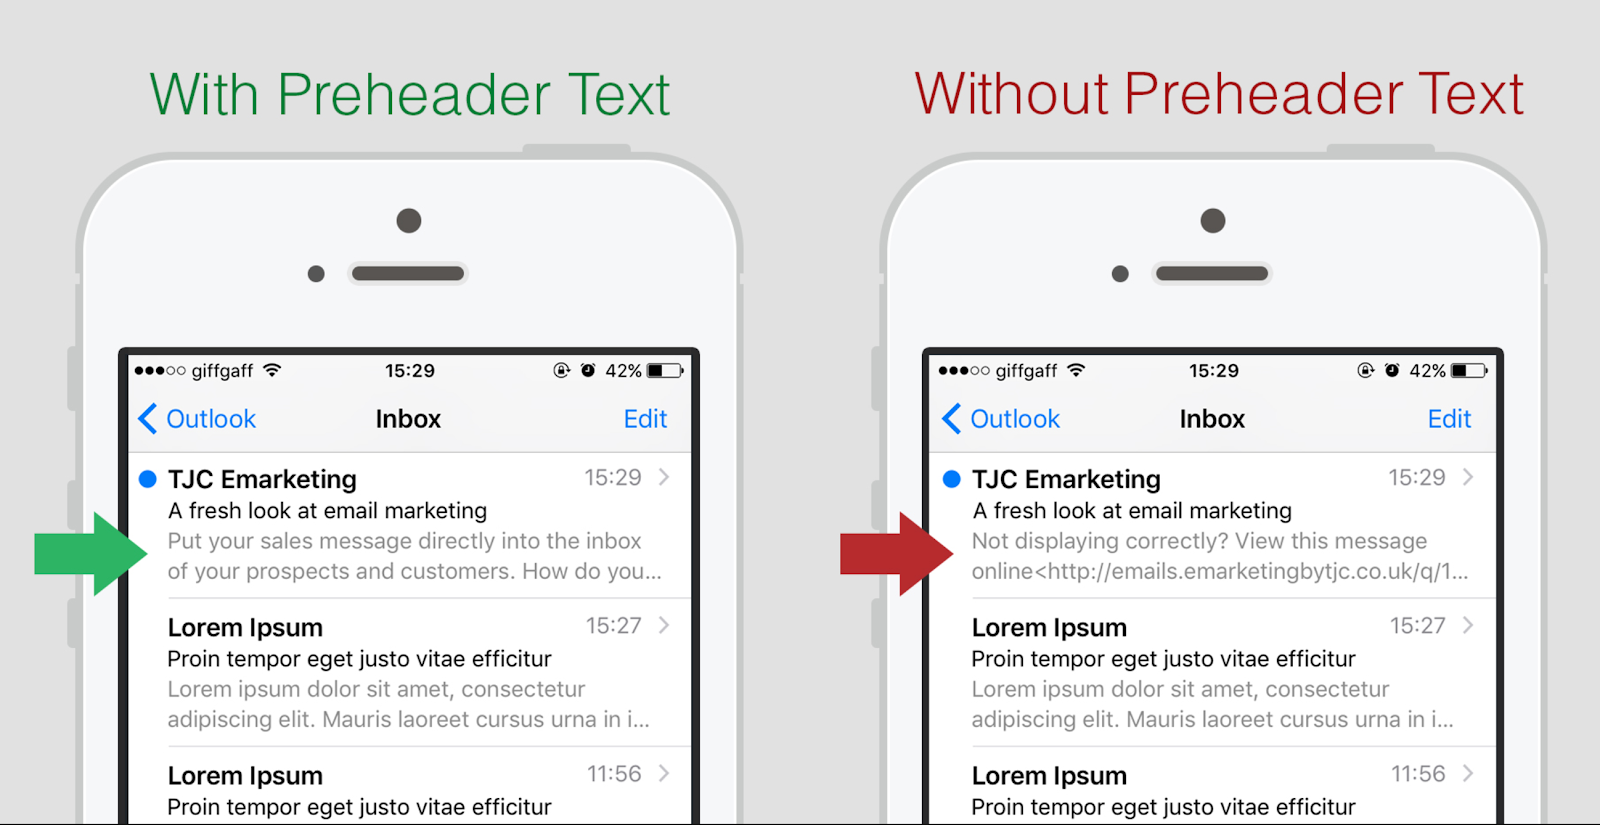 Email preheader text